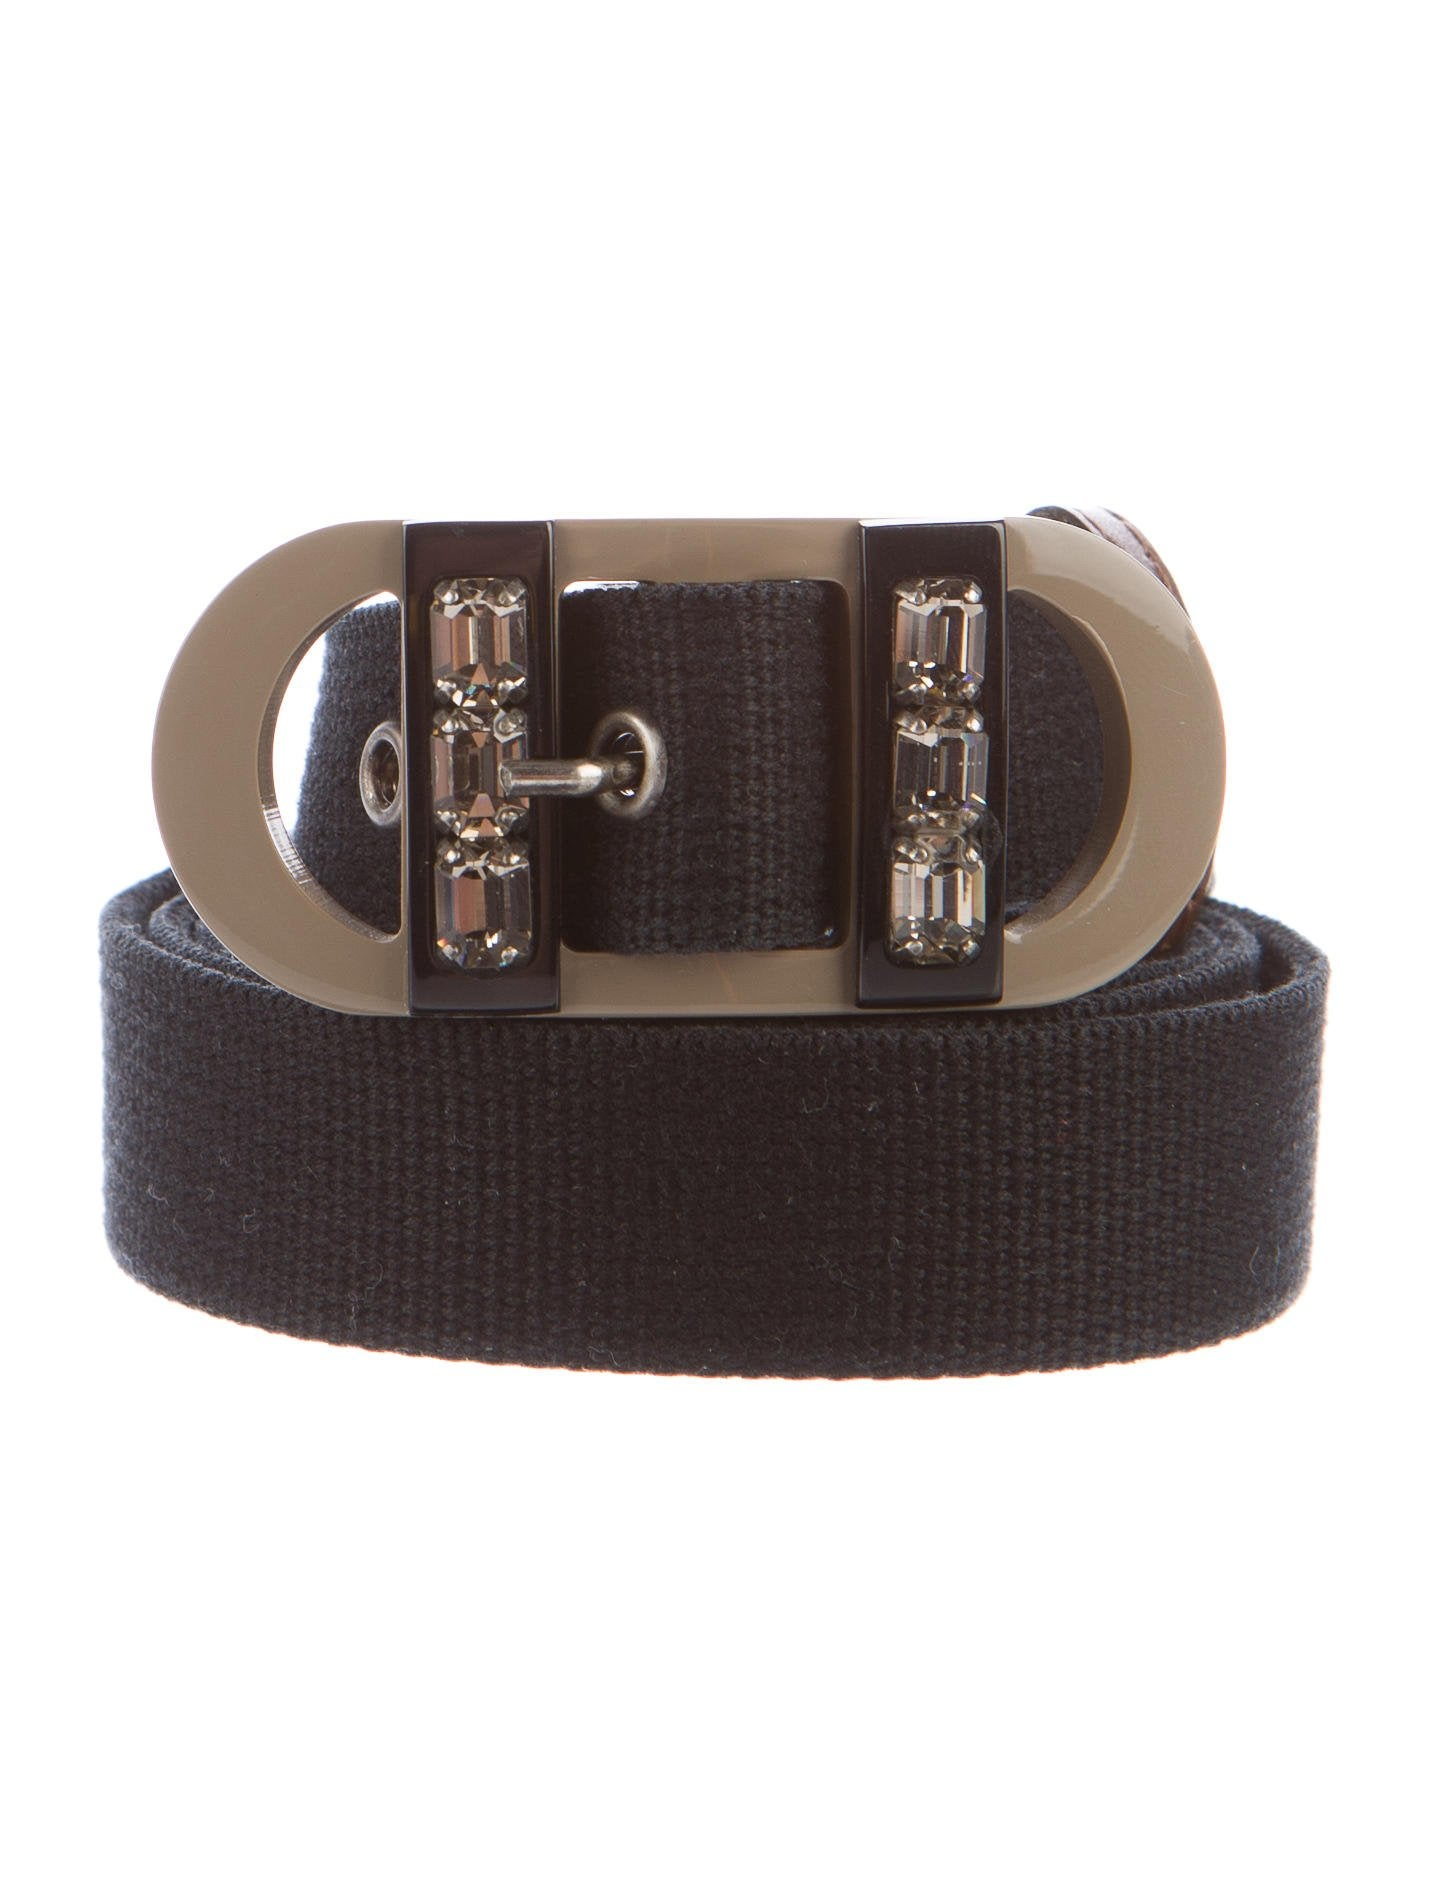 White by Vera Wang Crystal Embellished Belt. Mixed-crystal belt in bold diamond pattern with adjustable back. Imported.